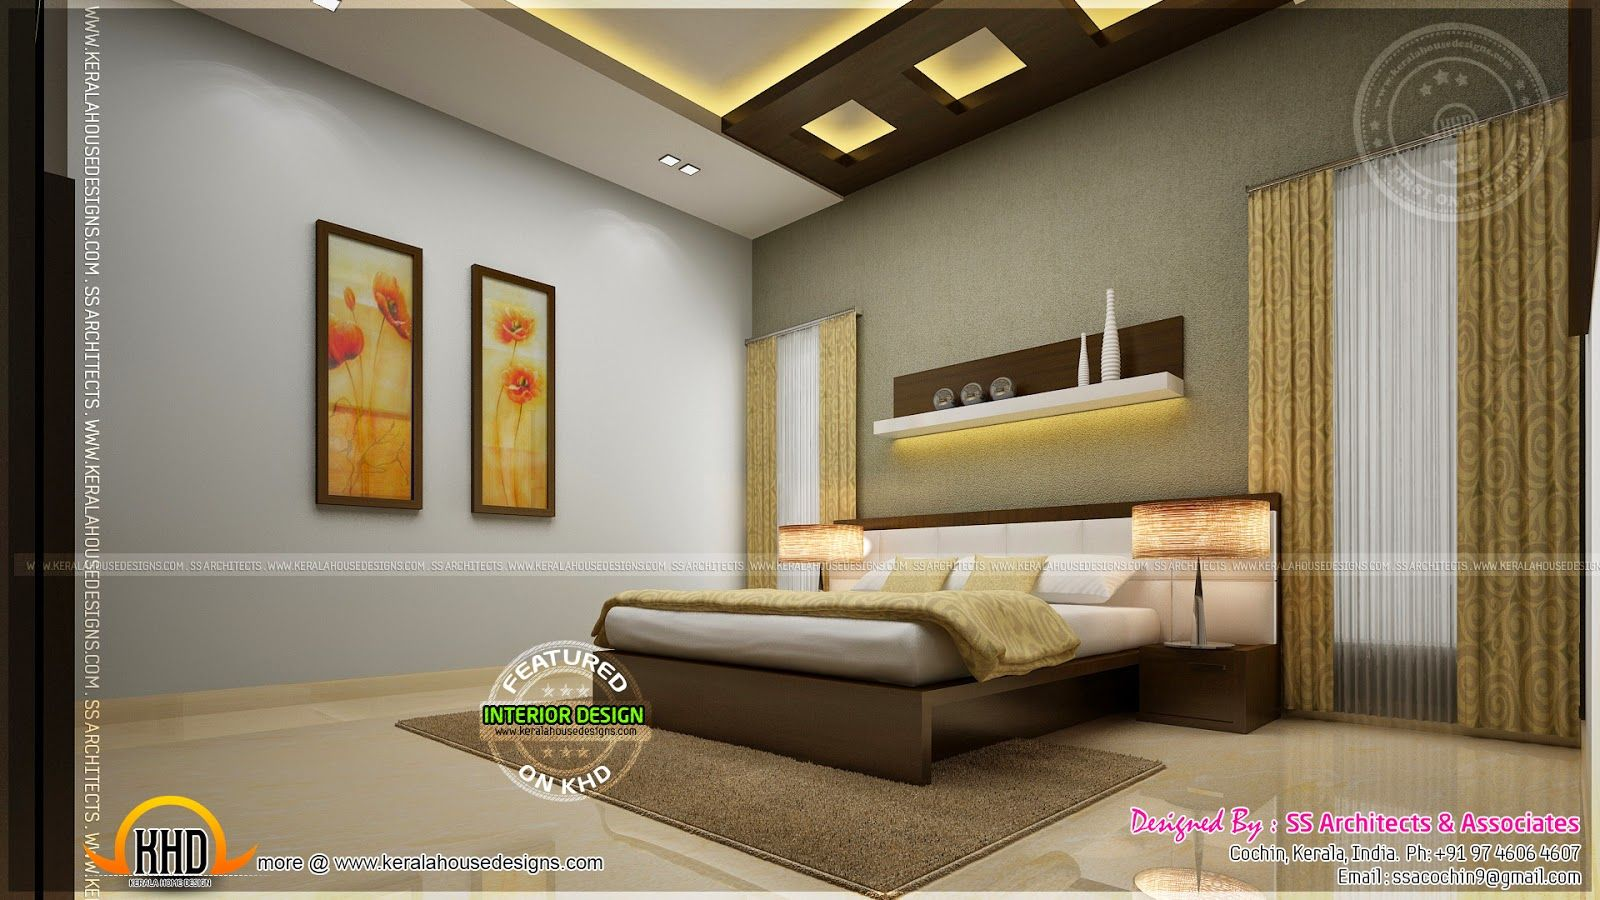 Indian master bedroom interior design google search for Master bedroom designs